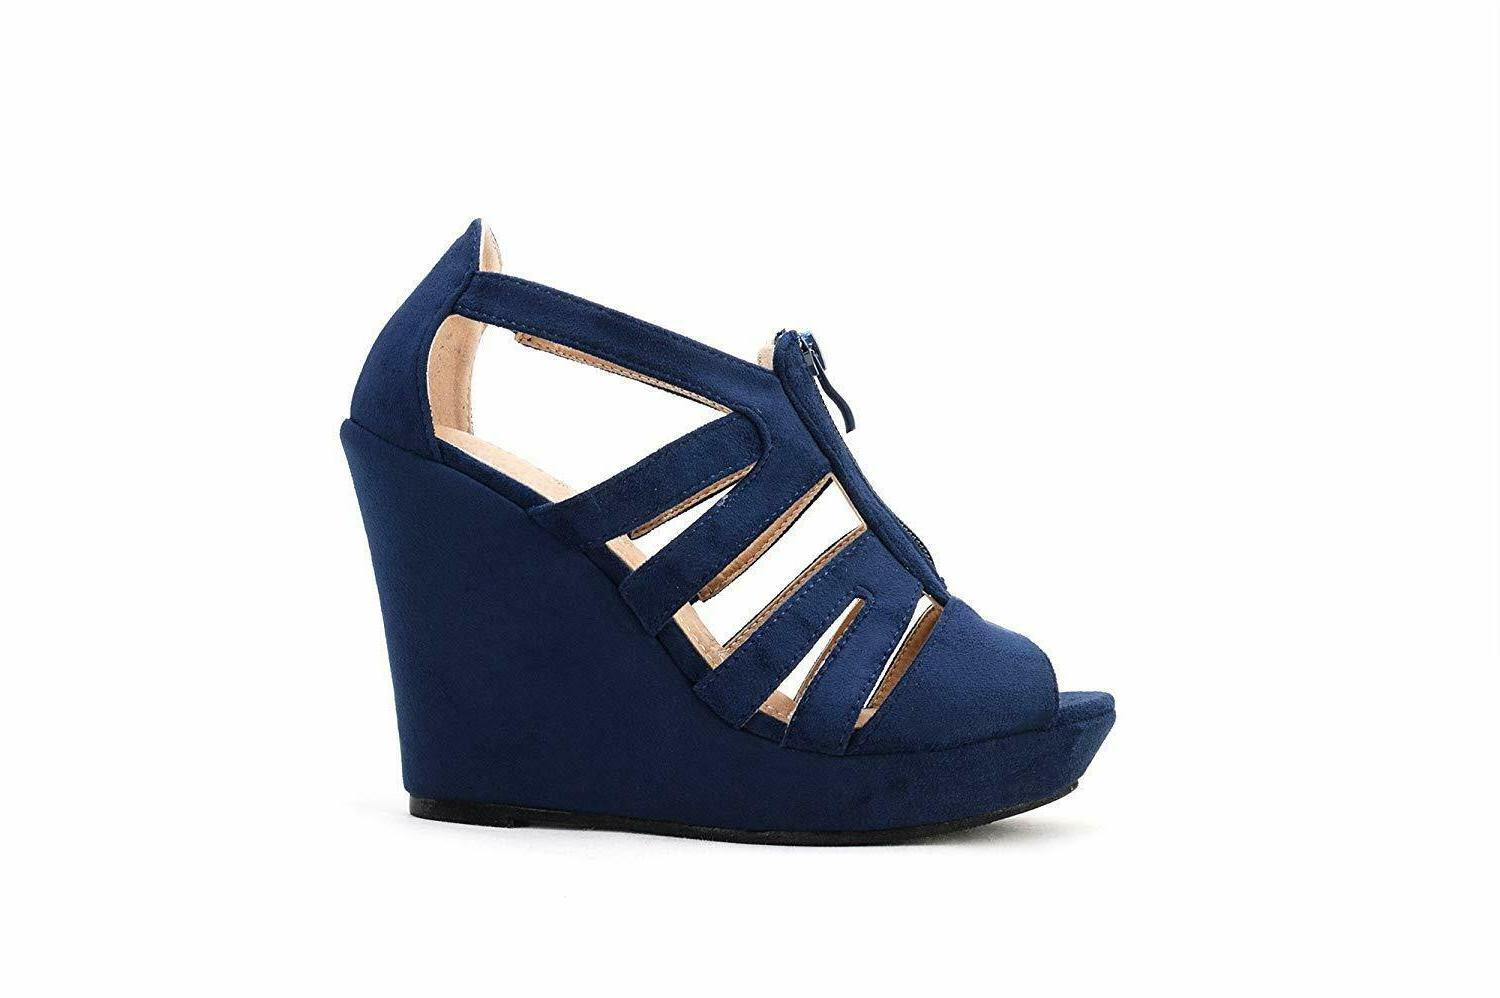 Zippered Strappy Toe Platform Shoes